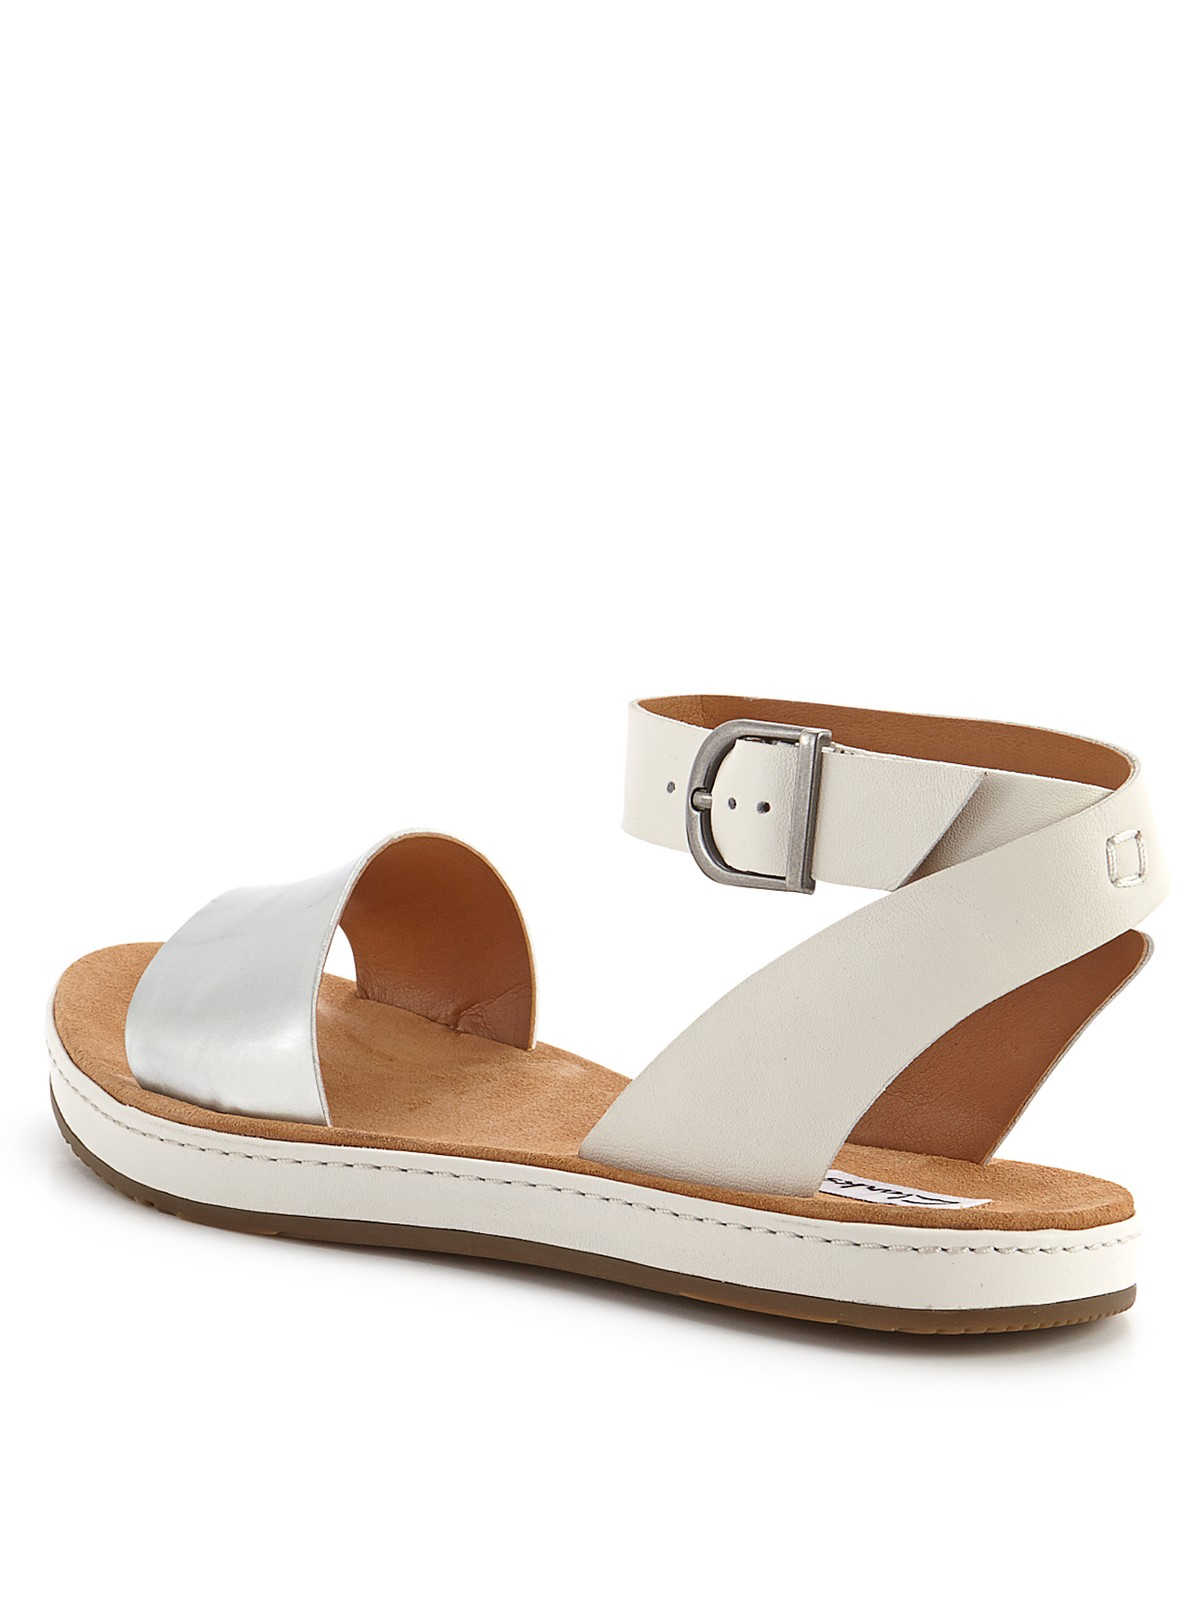 Clarks Romantic Moon Flat Ankle Strap Sandals In White